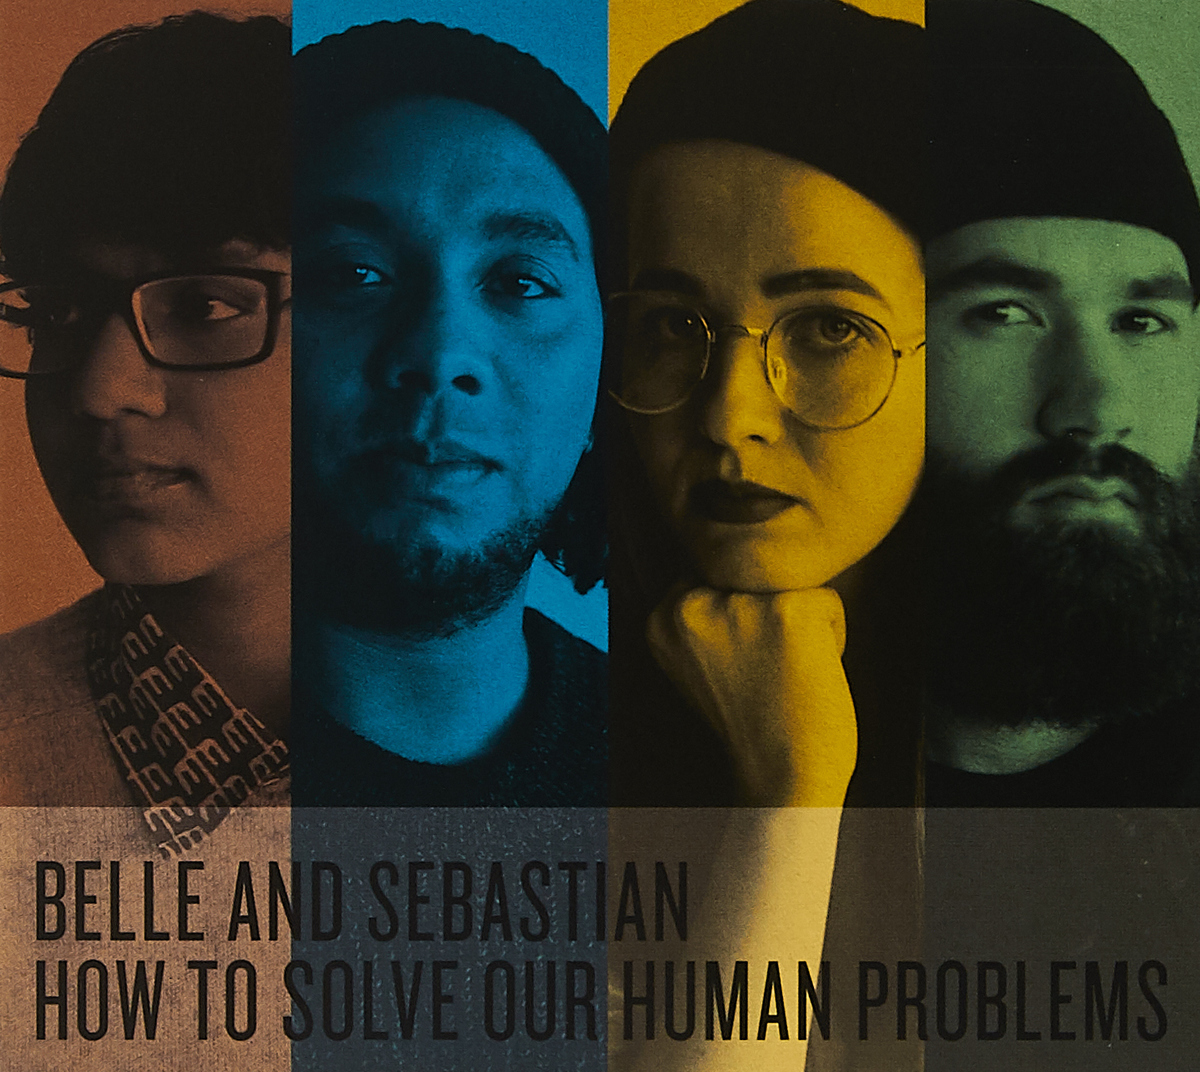 Belle & Sebastian And Sebastian. How To Solve Our Human Problems